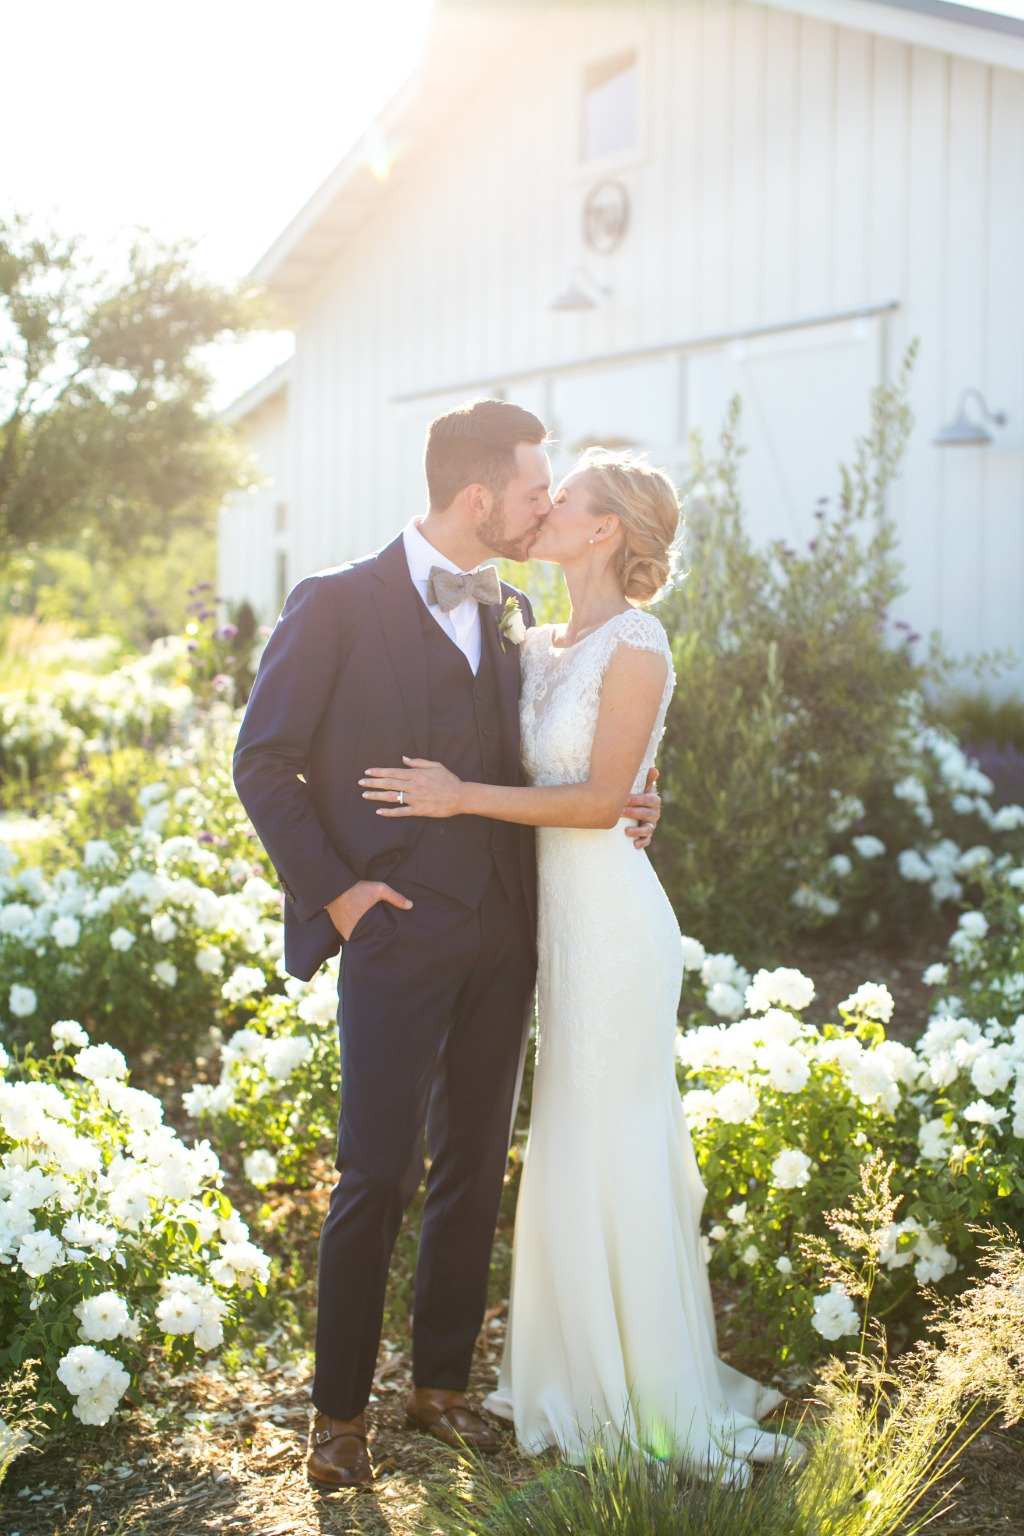 STEPHANIE + SEAN'S SONOMA WEDDING. Dress: Lea-Ann Belter Bridal Iris gown via Lace and Bustle Bridal | photographer: Sabine Scherer